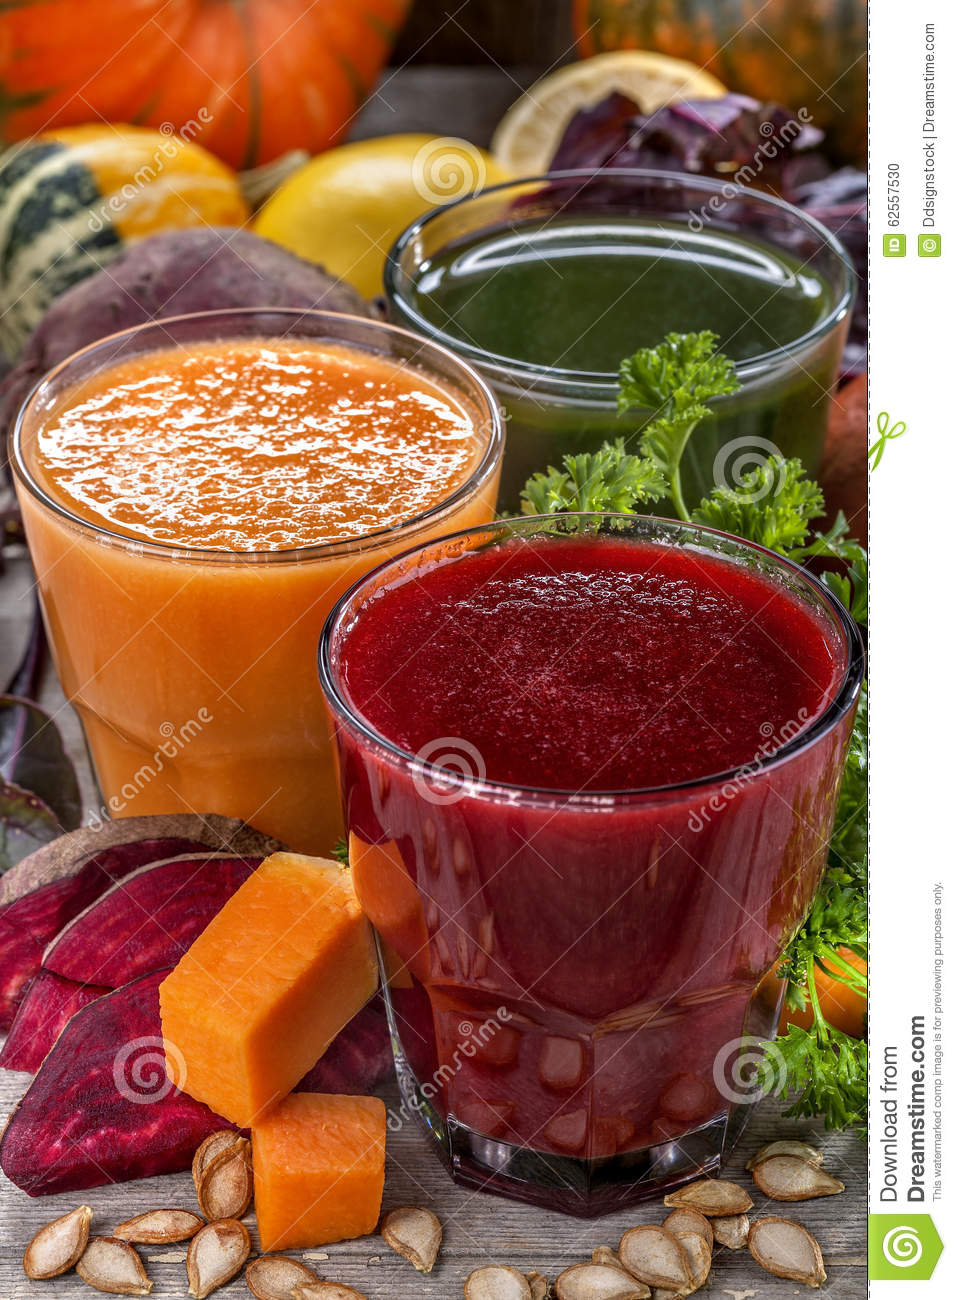 Smoothies And Juices Royalty Free Stock Photography